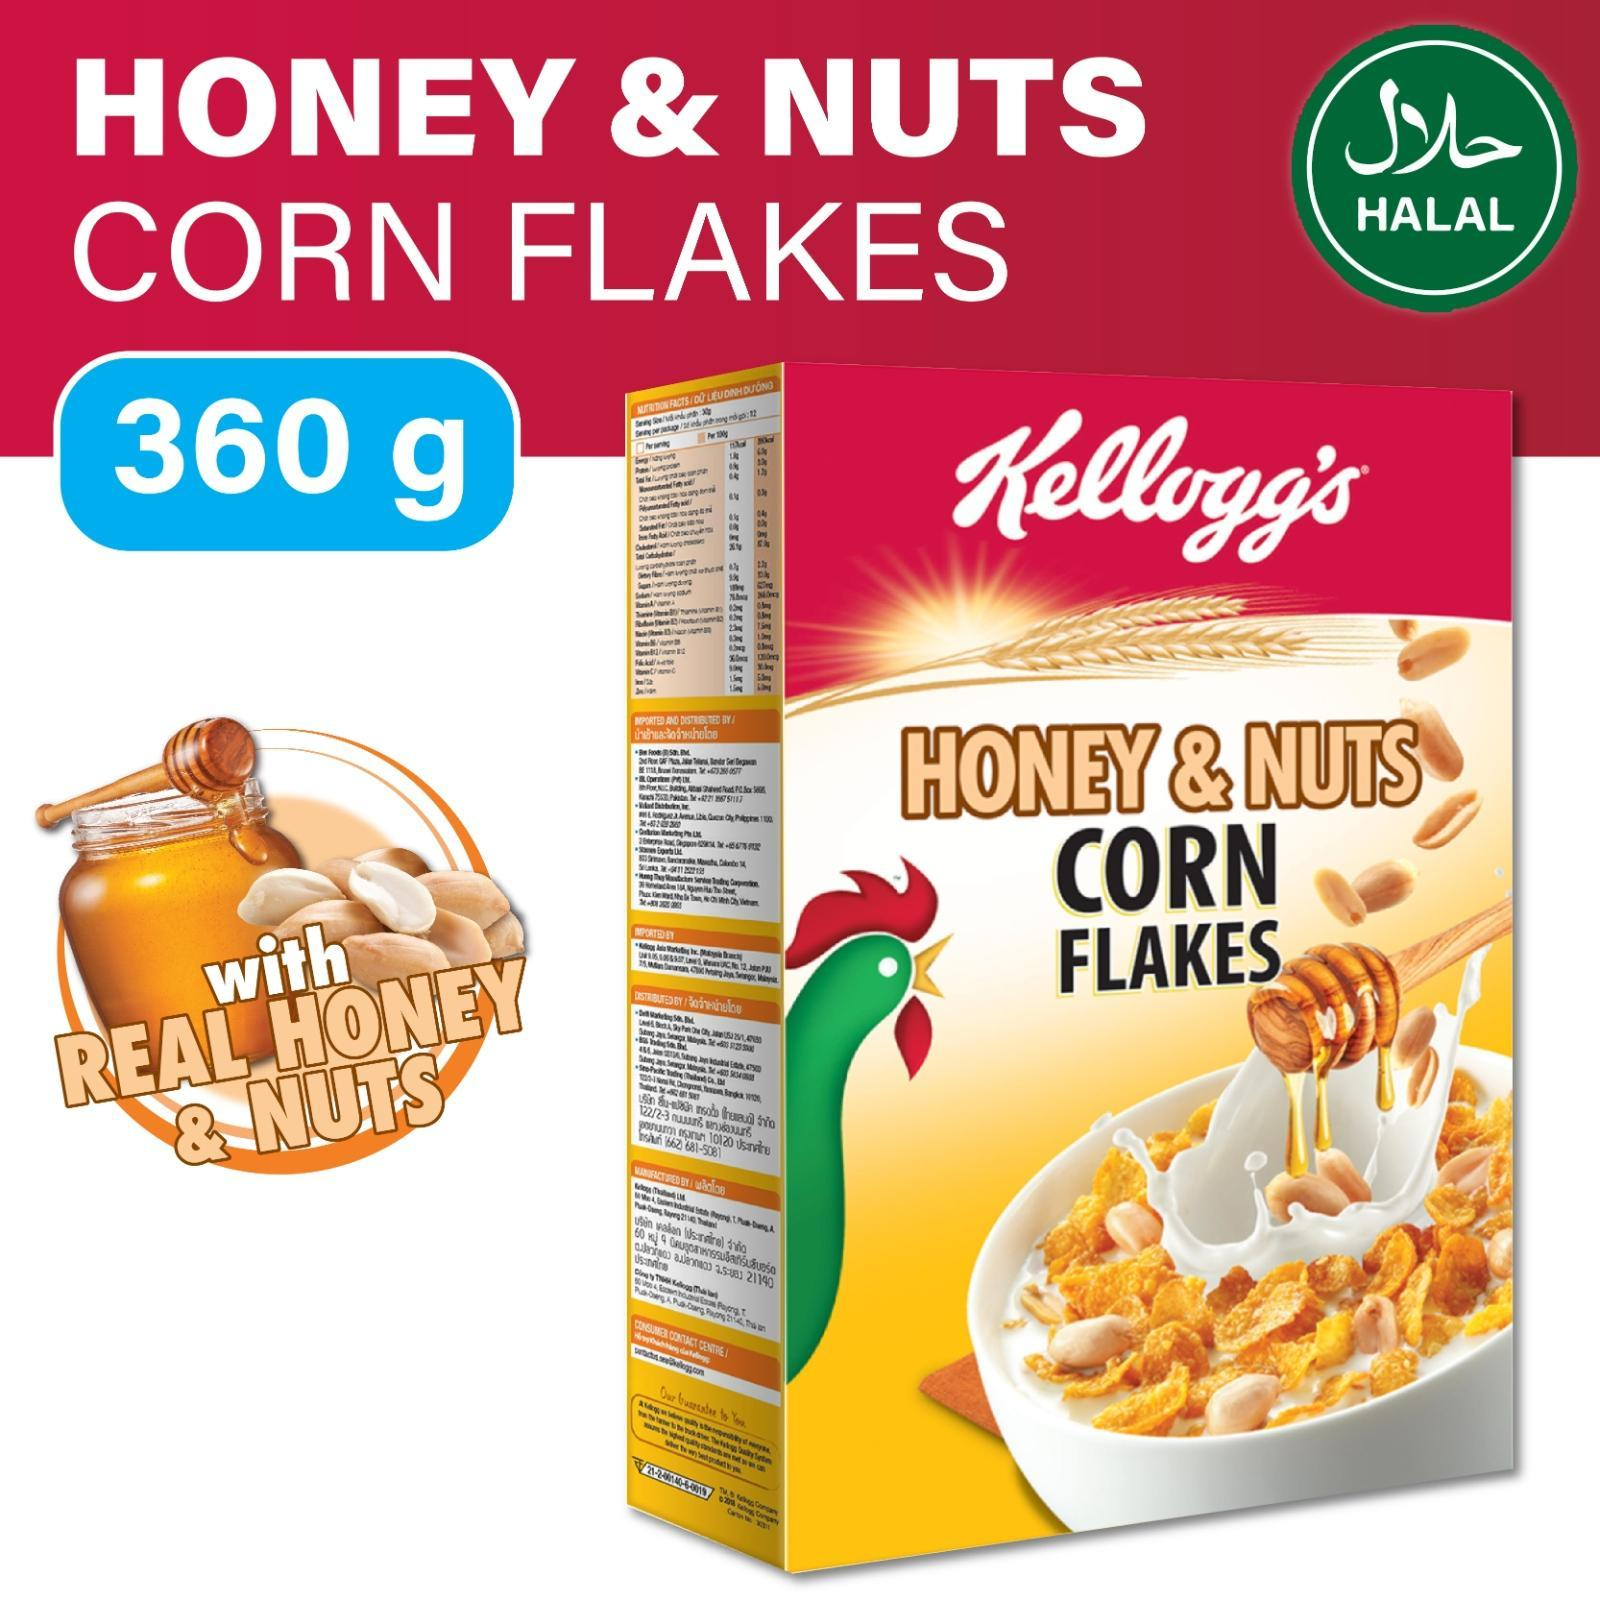 Kellogg's Honey and Nuts Corn Flakes Breakfast Cereal